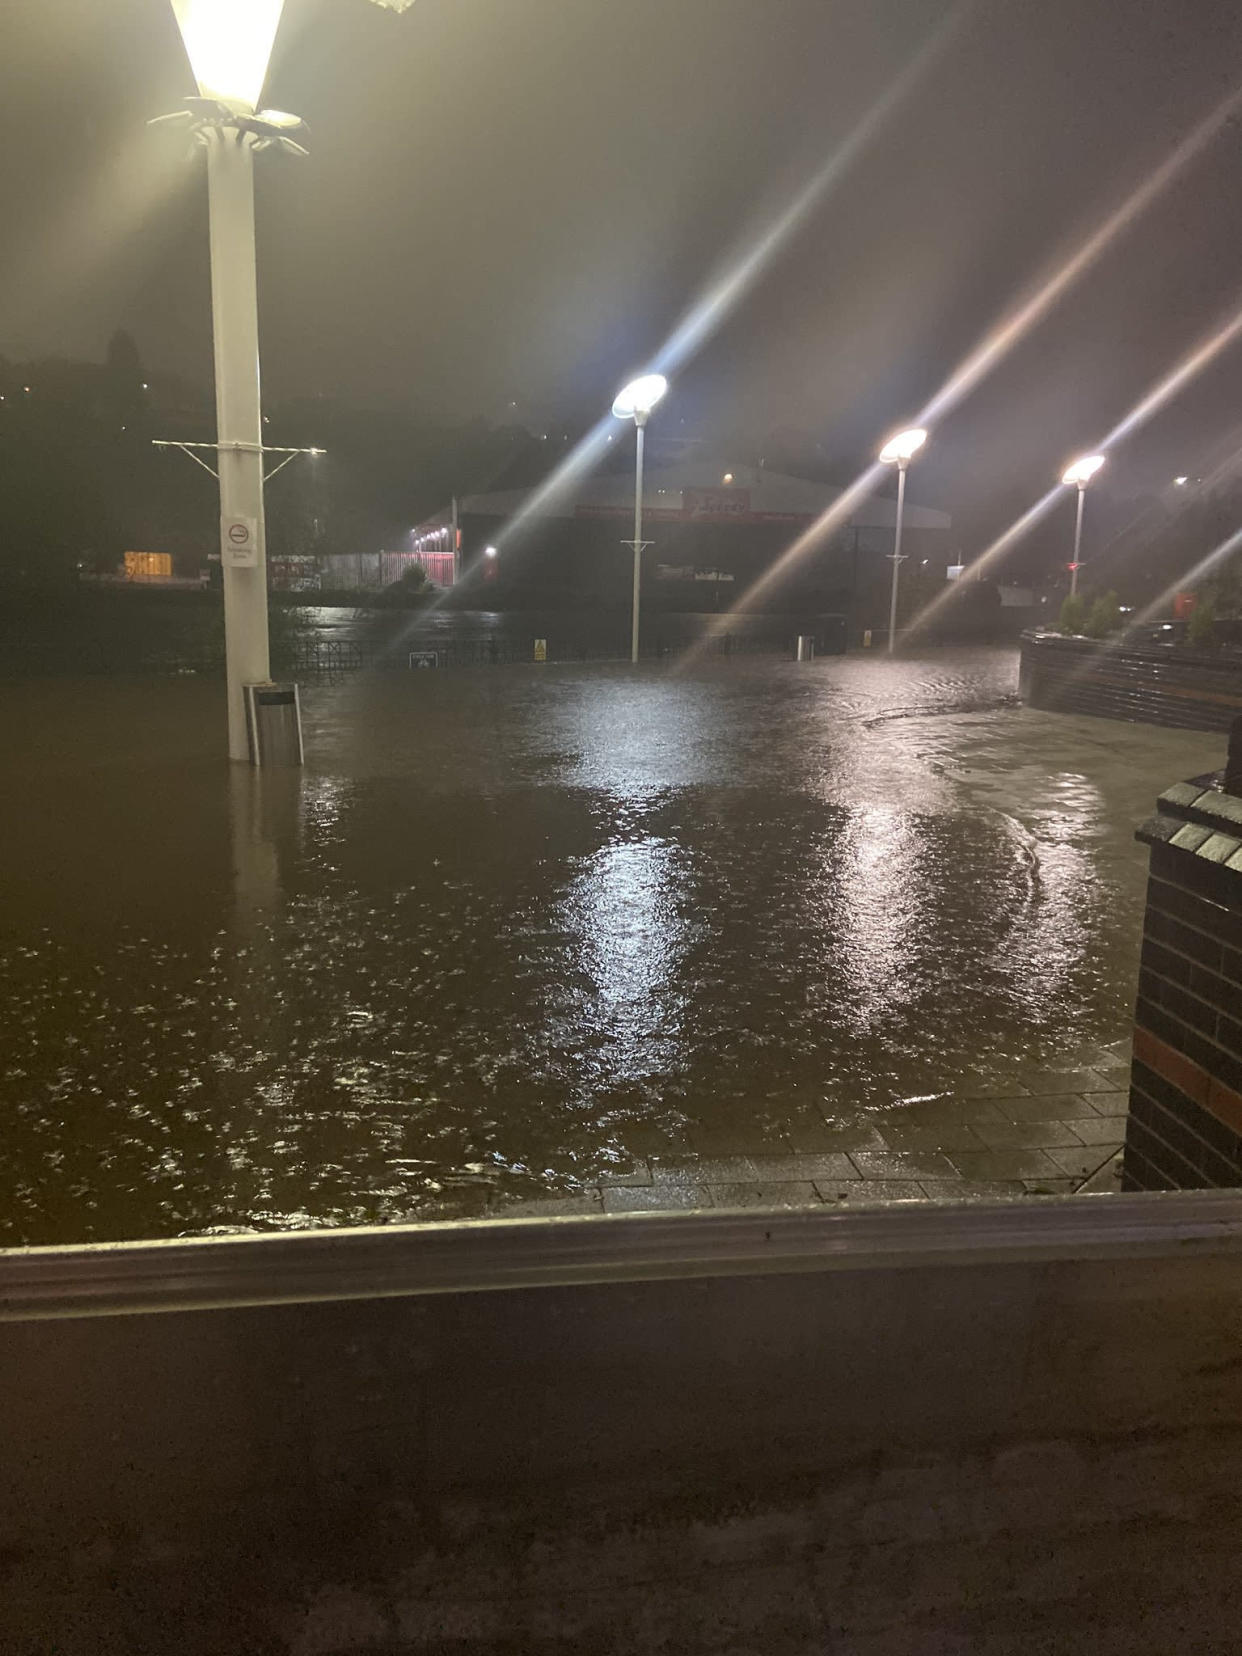 An image taken from inside the centre by a Twitter user showing flood water outside Meadowhall shopping centre, just off the M1 near Sheffield, after torrential rain hit the area. (Twitter @morgannlouisee_ )